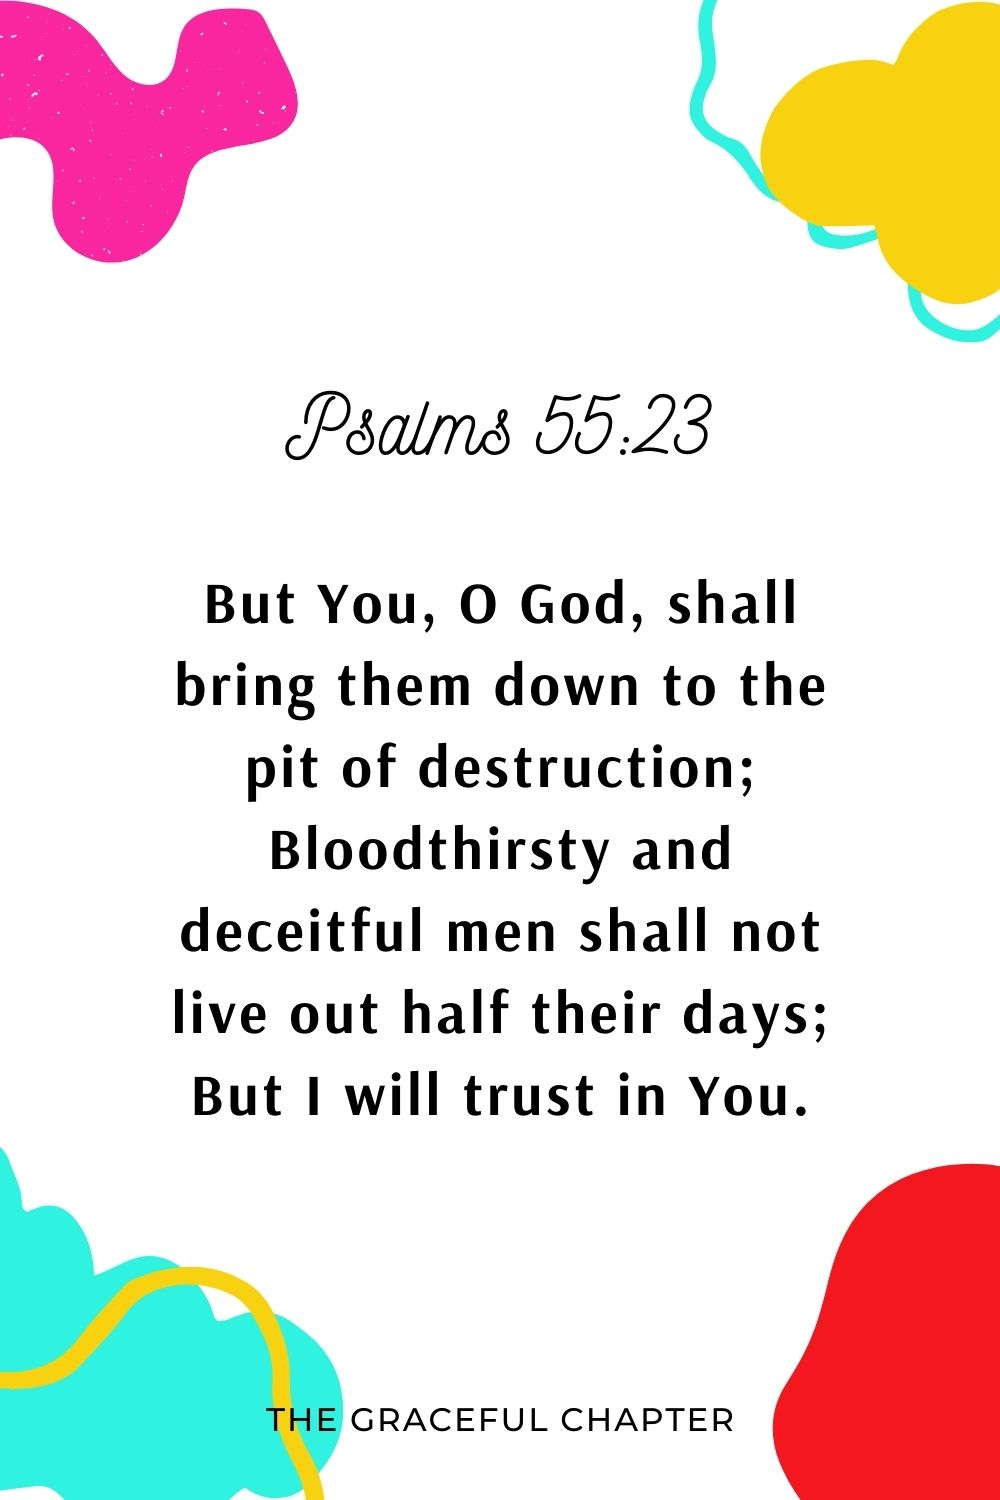 But You, O God, shall bring them down to the pit of destruction; Bloodthirsty and deceitful men shall not live out half their days; But I will trust in You. Psalms 55:23